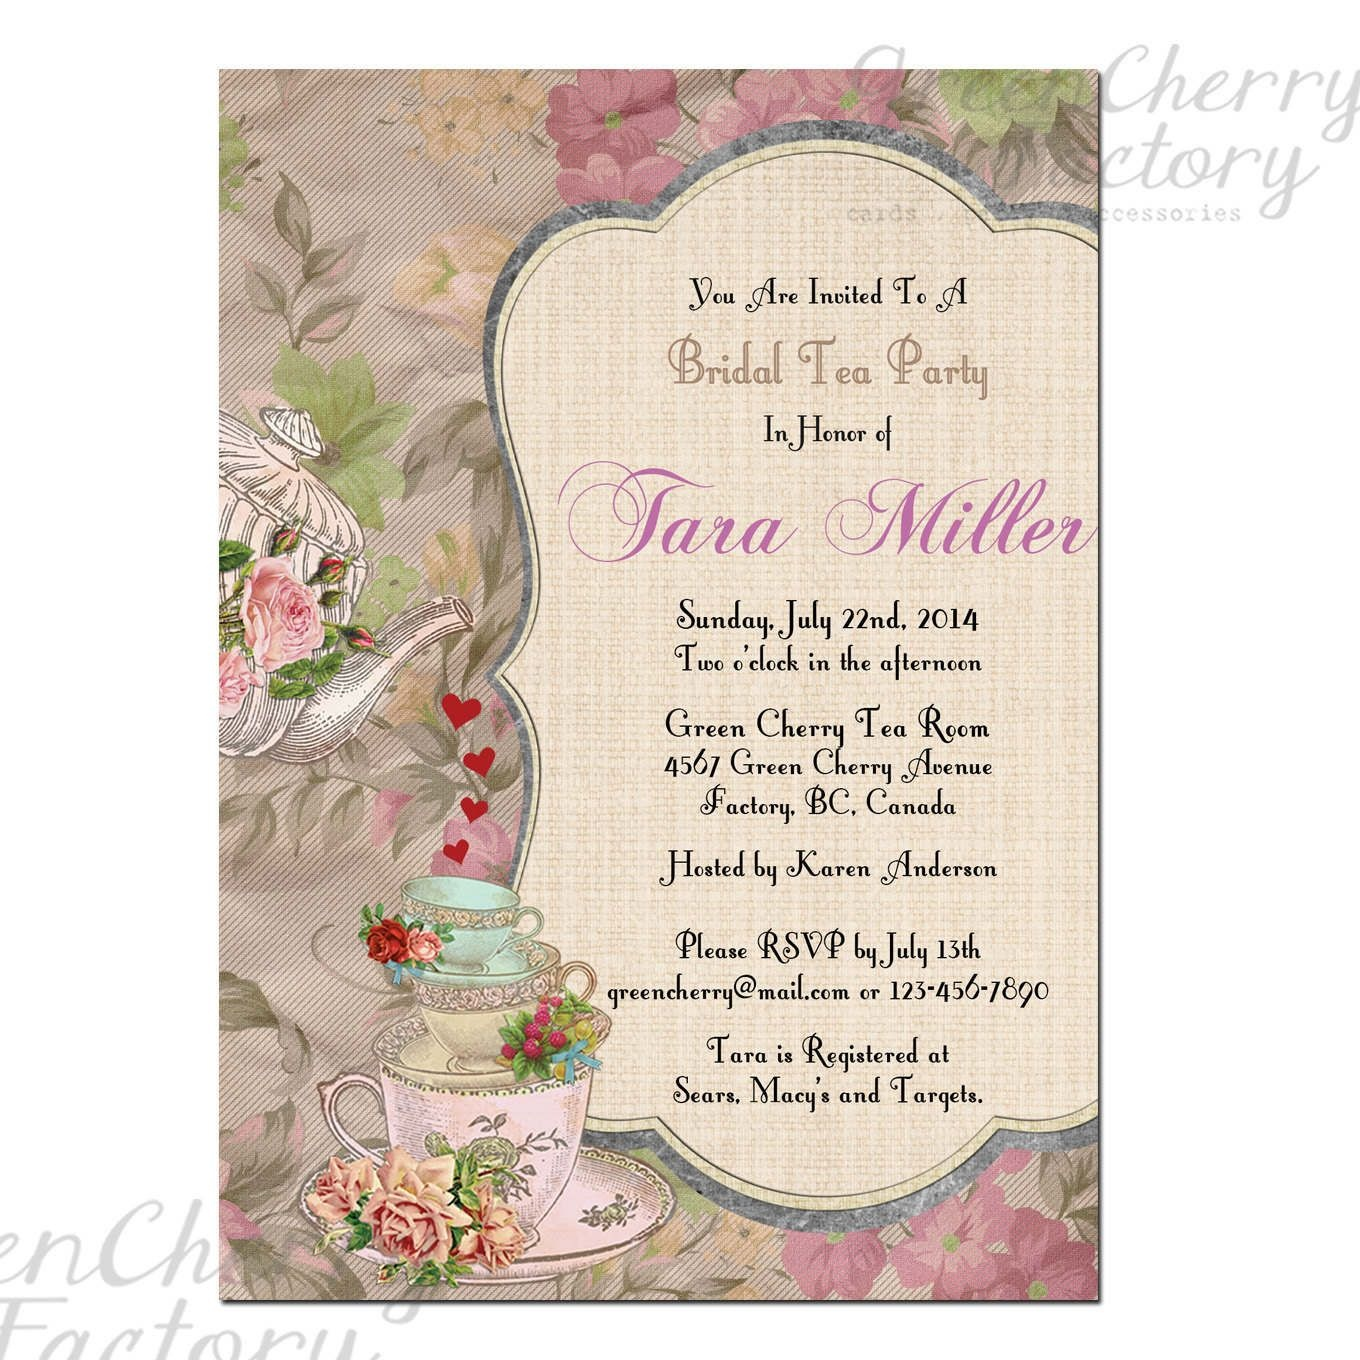 Event Invitation Card Template Free Awesome Free Christmas Party - Free Printable Vintage Tea Party Invitations